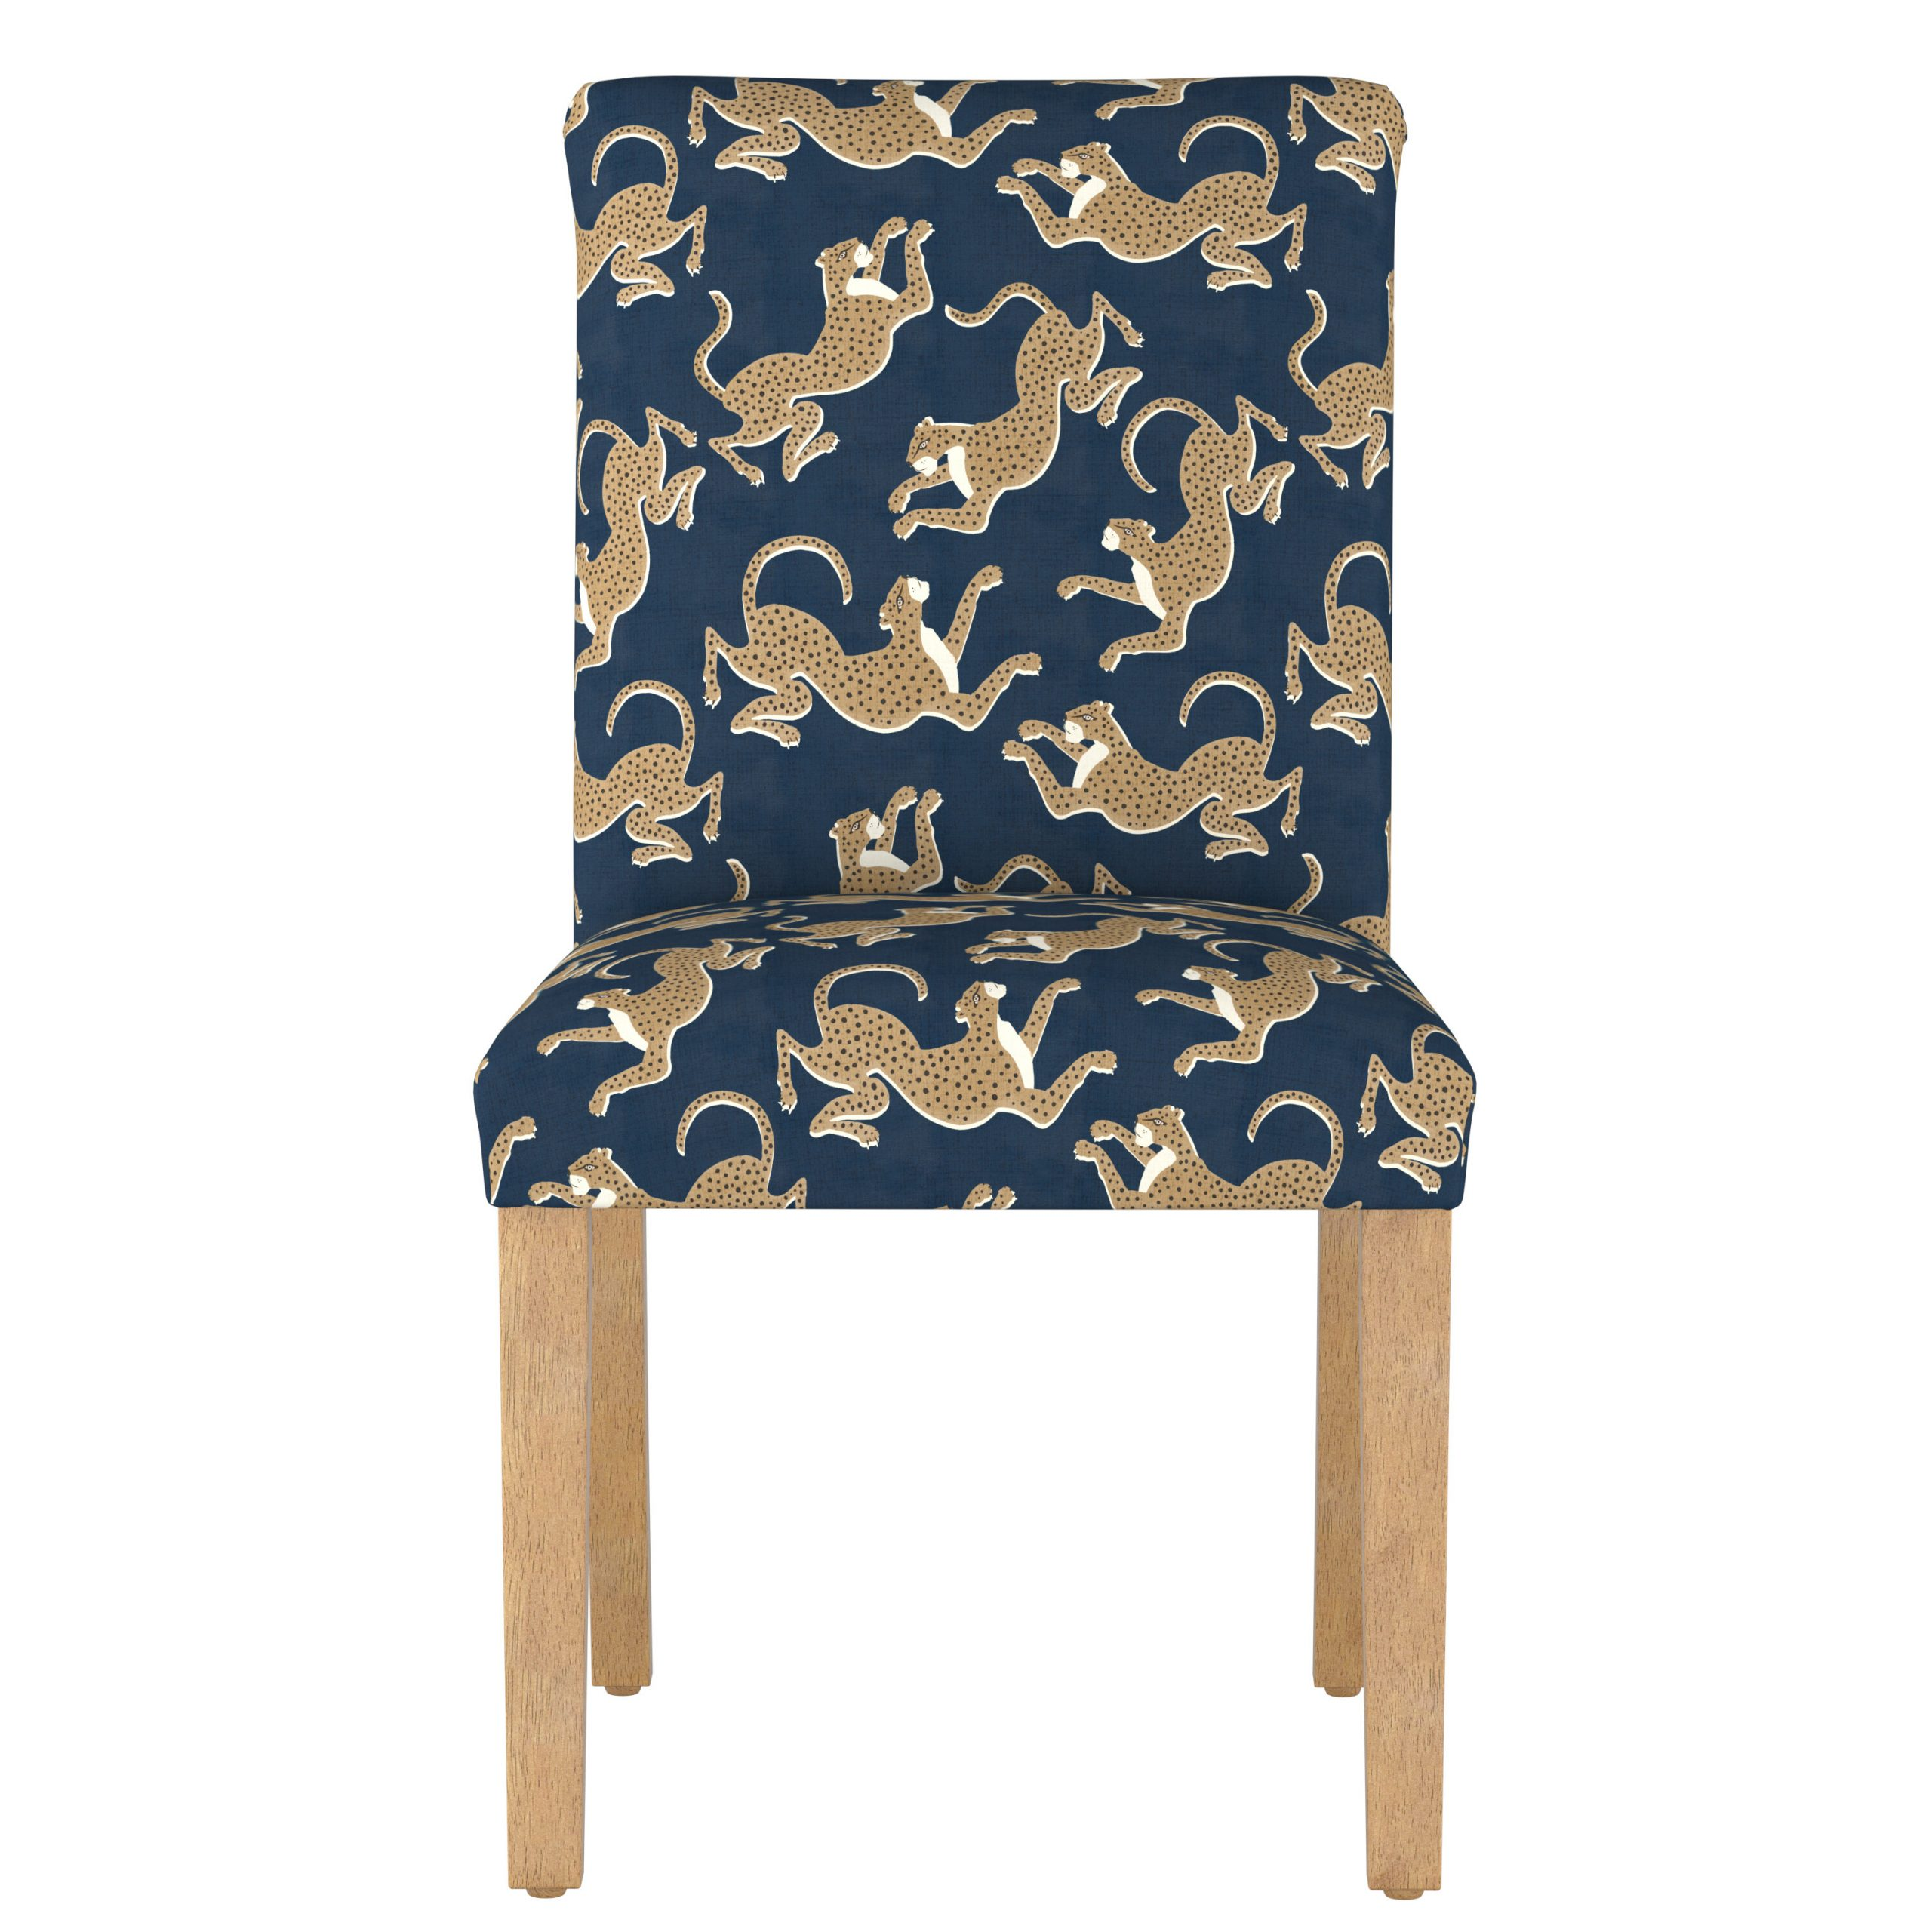 Linen Side Accent Chairs You'Ll Love In 2021 | Wayfair Intended For Chiles Linen Side Chairs (View 2 of 15)